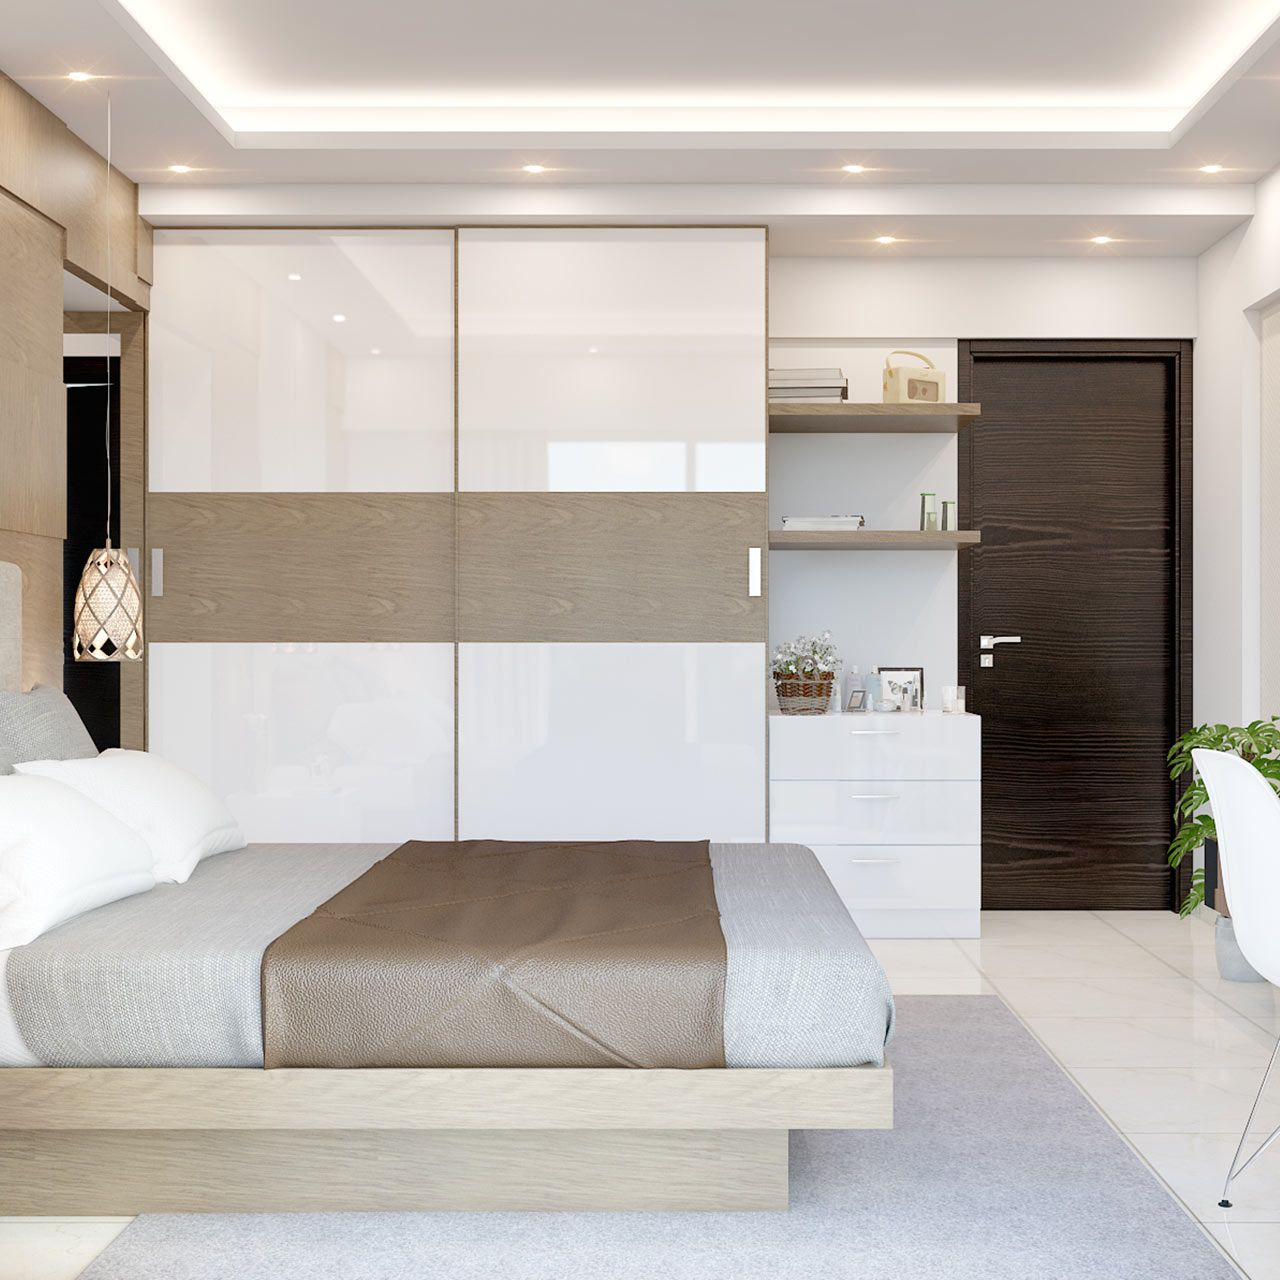 Design Cafe Expert Speak: A Fashionable Guide To Wardrobe Designs For Your  Bedroom In 2020 | Wardrobe design bedroom, Bedroom closet design, Bedroom  design